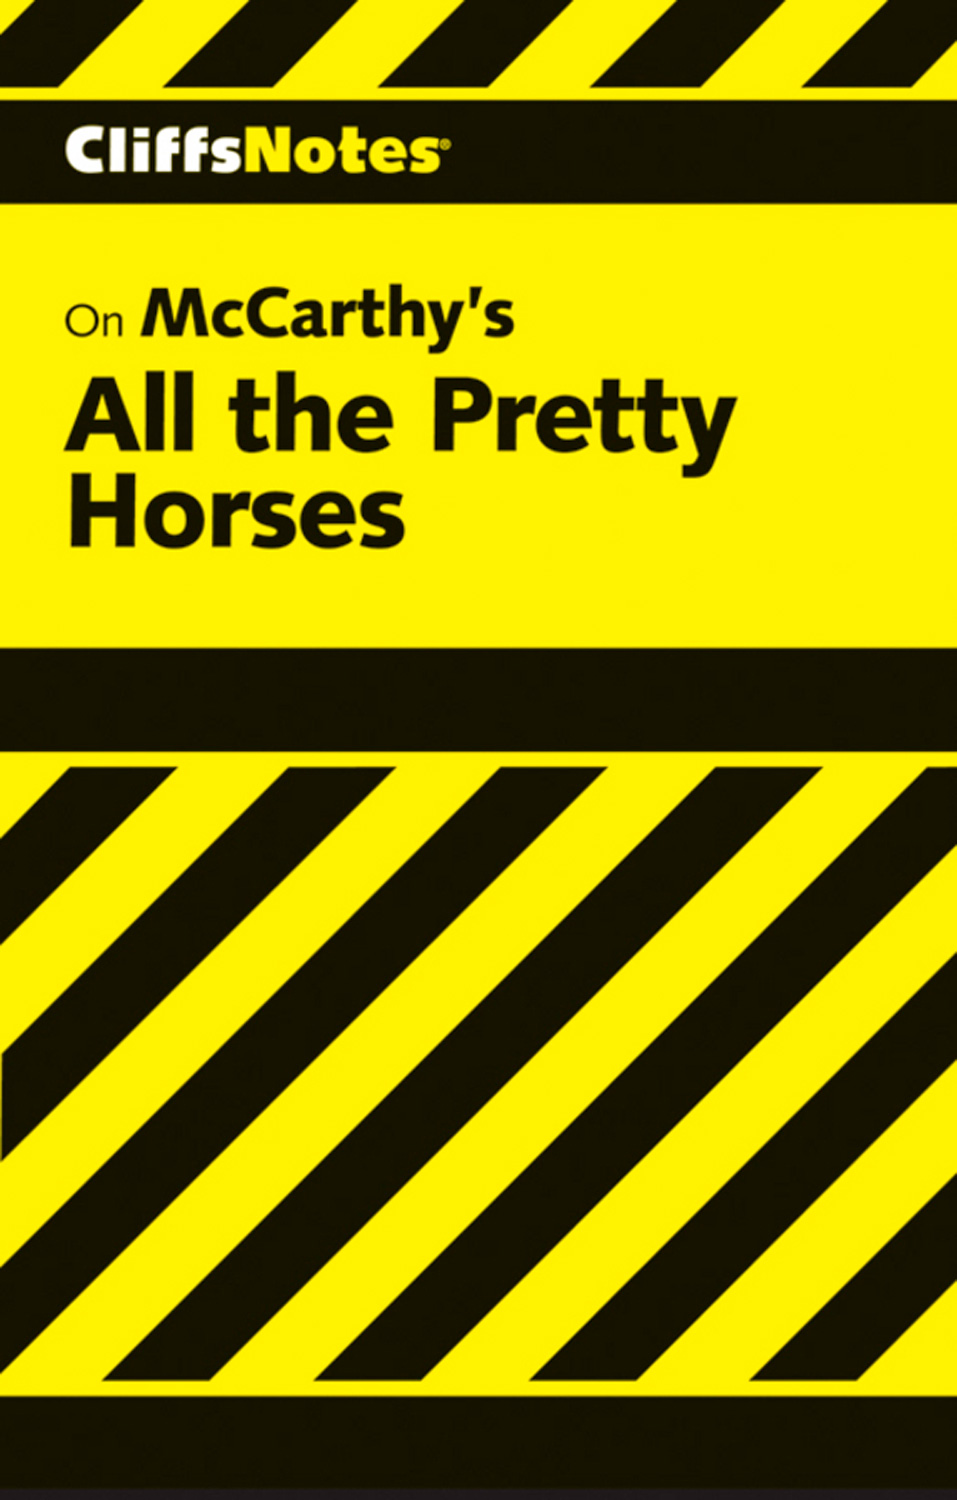 CliffsNotes on McCarthy's All the Pretty Horses-9780544179448